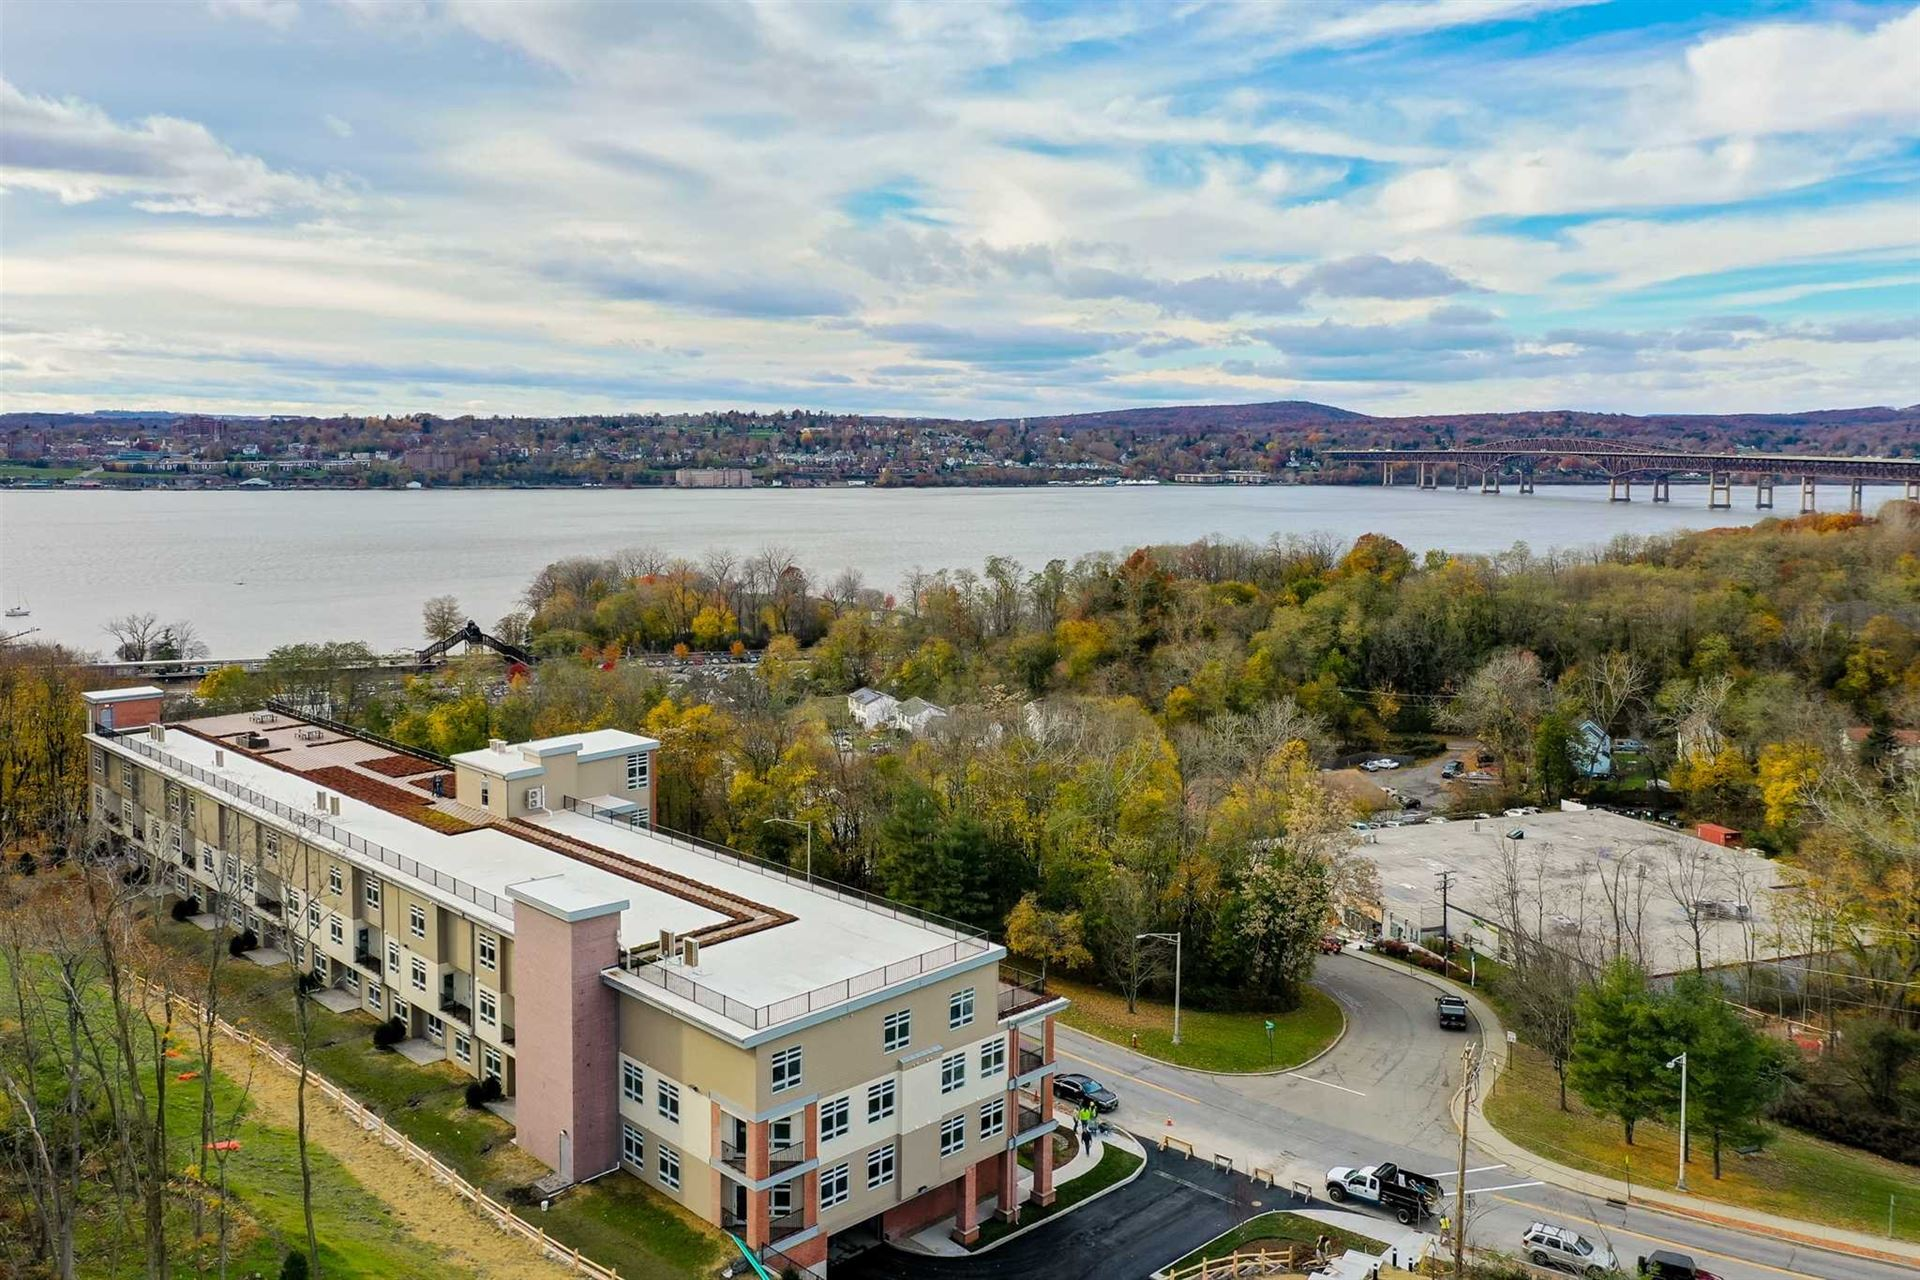 30 BEEKMAN PH3, Beacon, NY 12508 - #: 397383